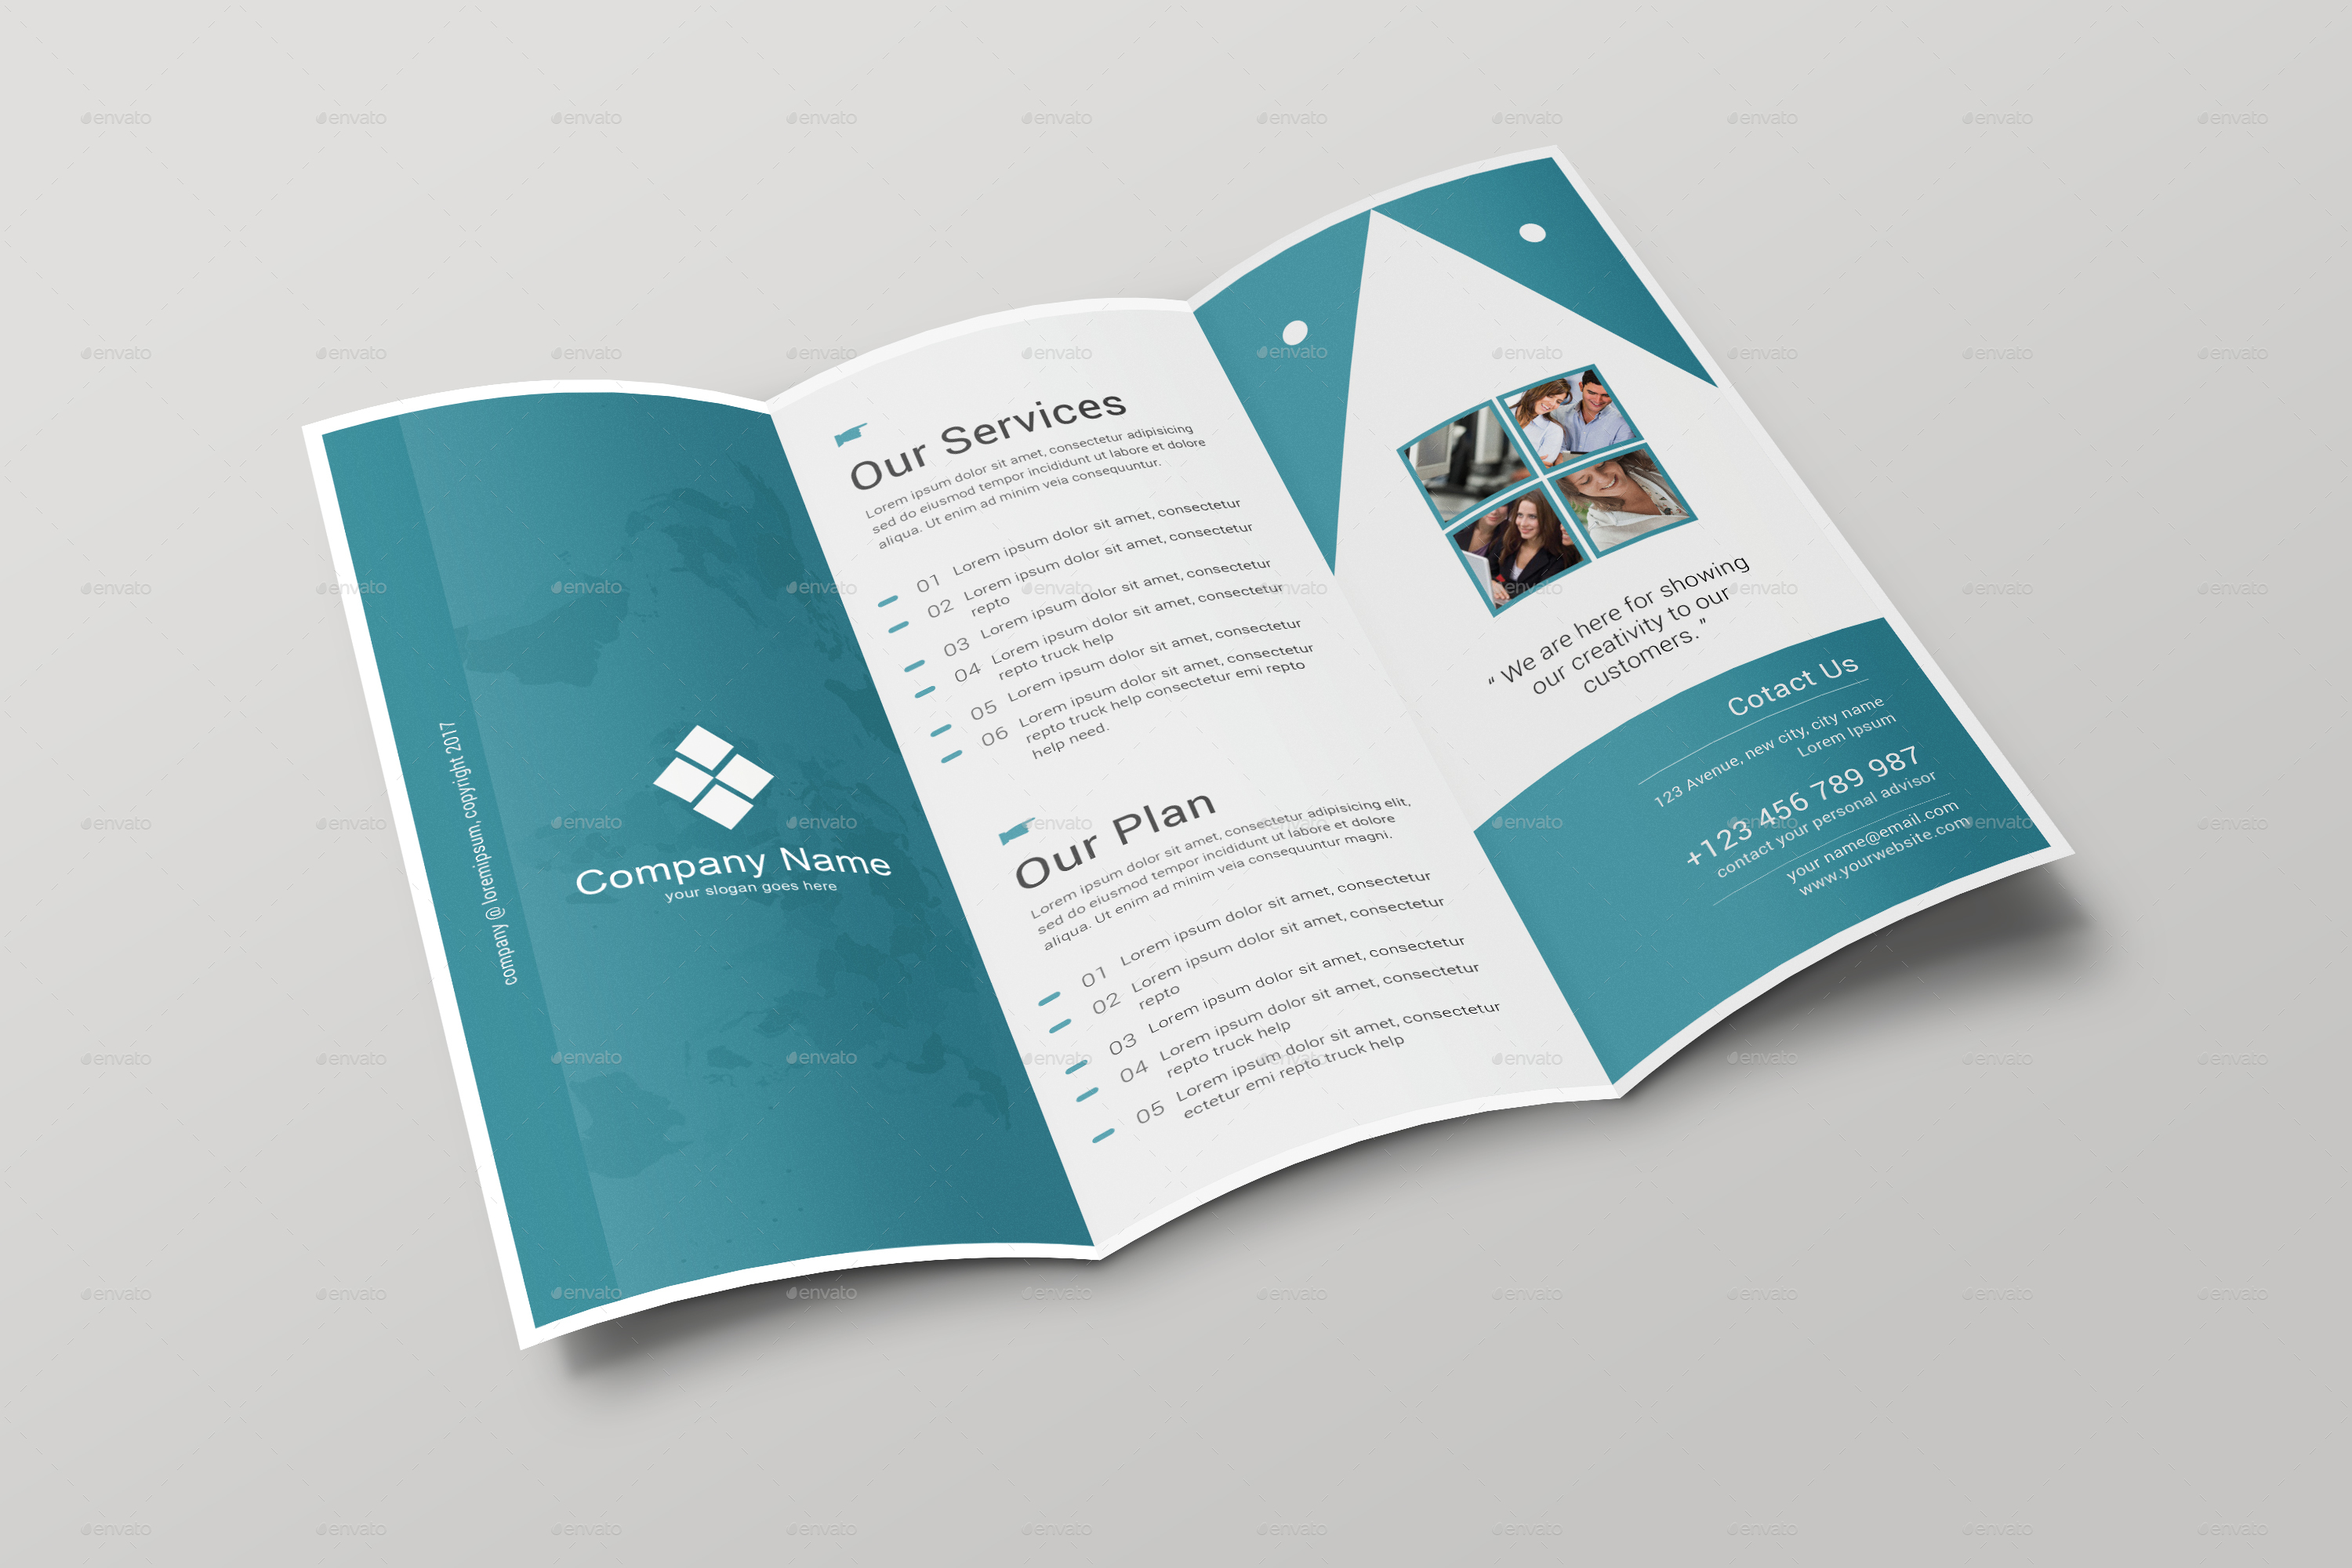 tri fold brochure images koni polycode co